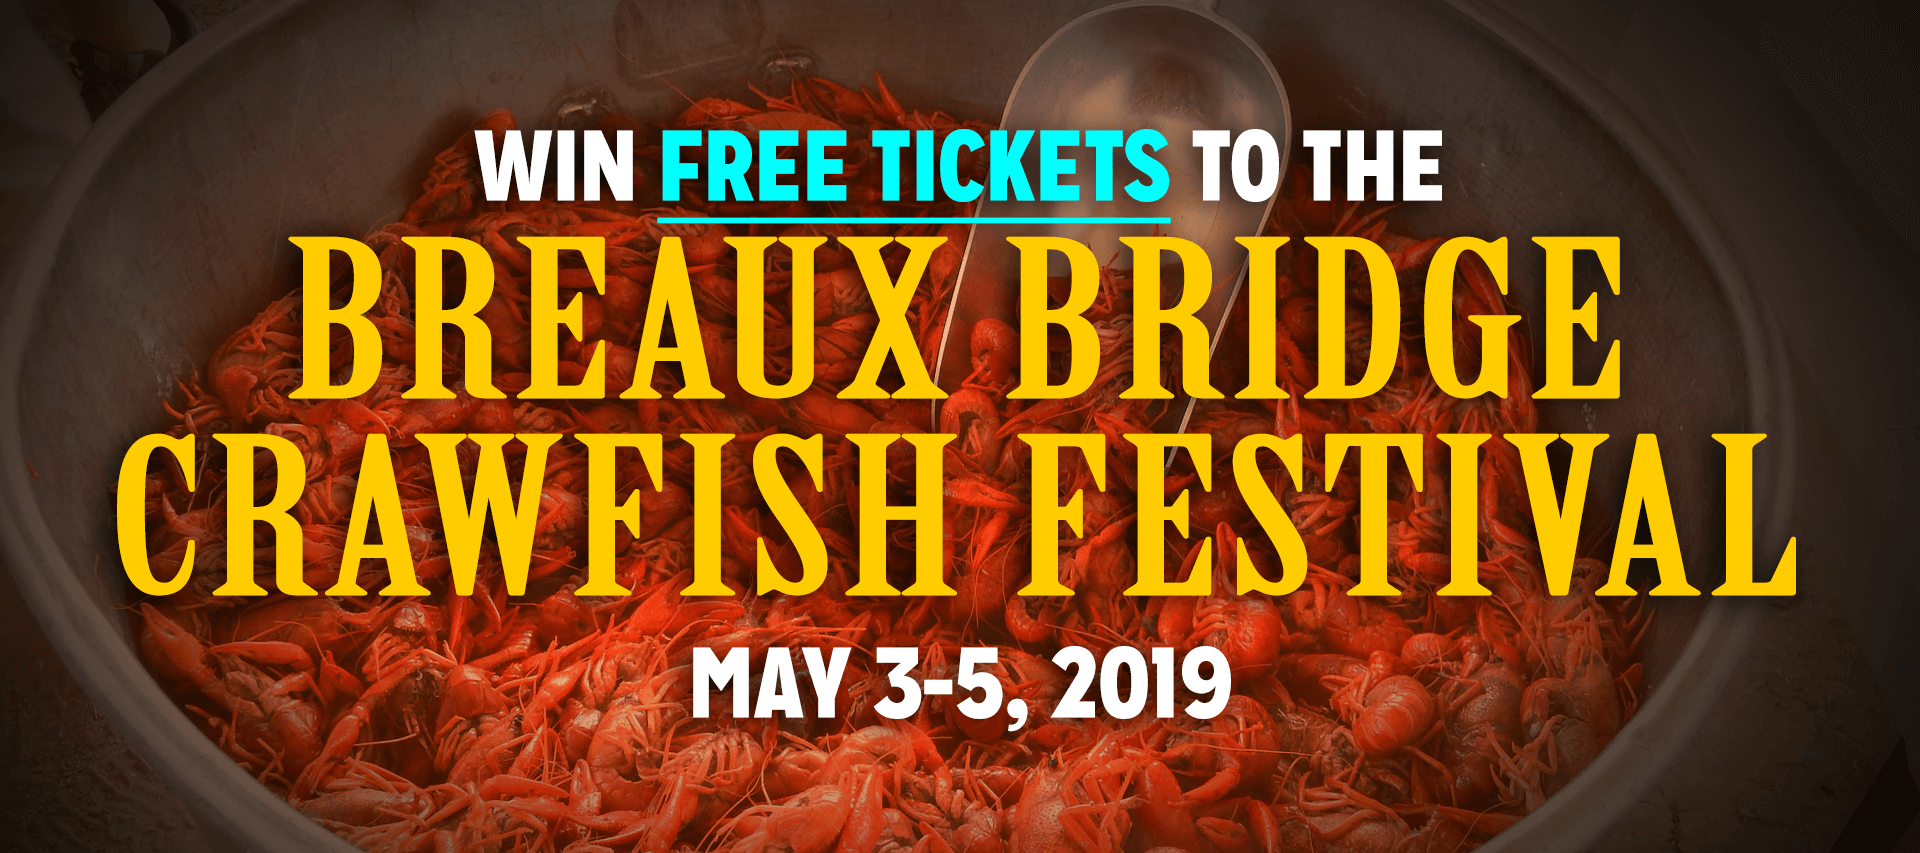 The Young Firm Sponsors Breaux Bridge Crawfish Festival